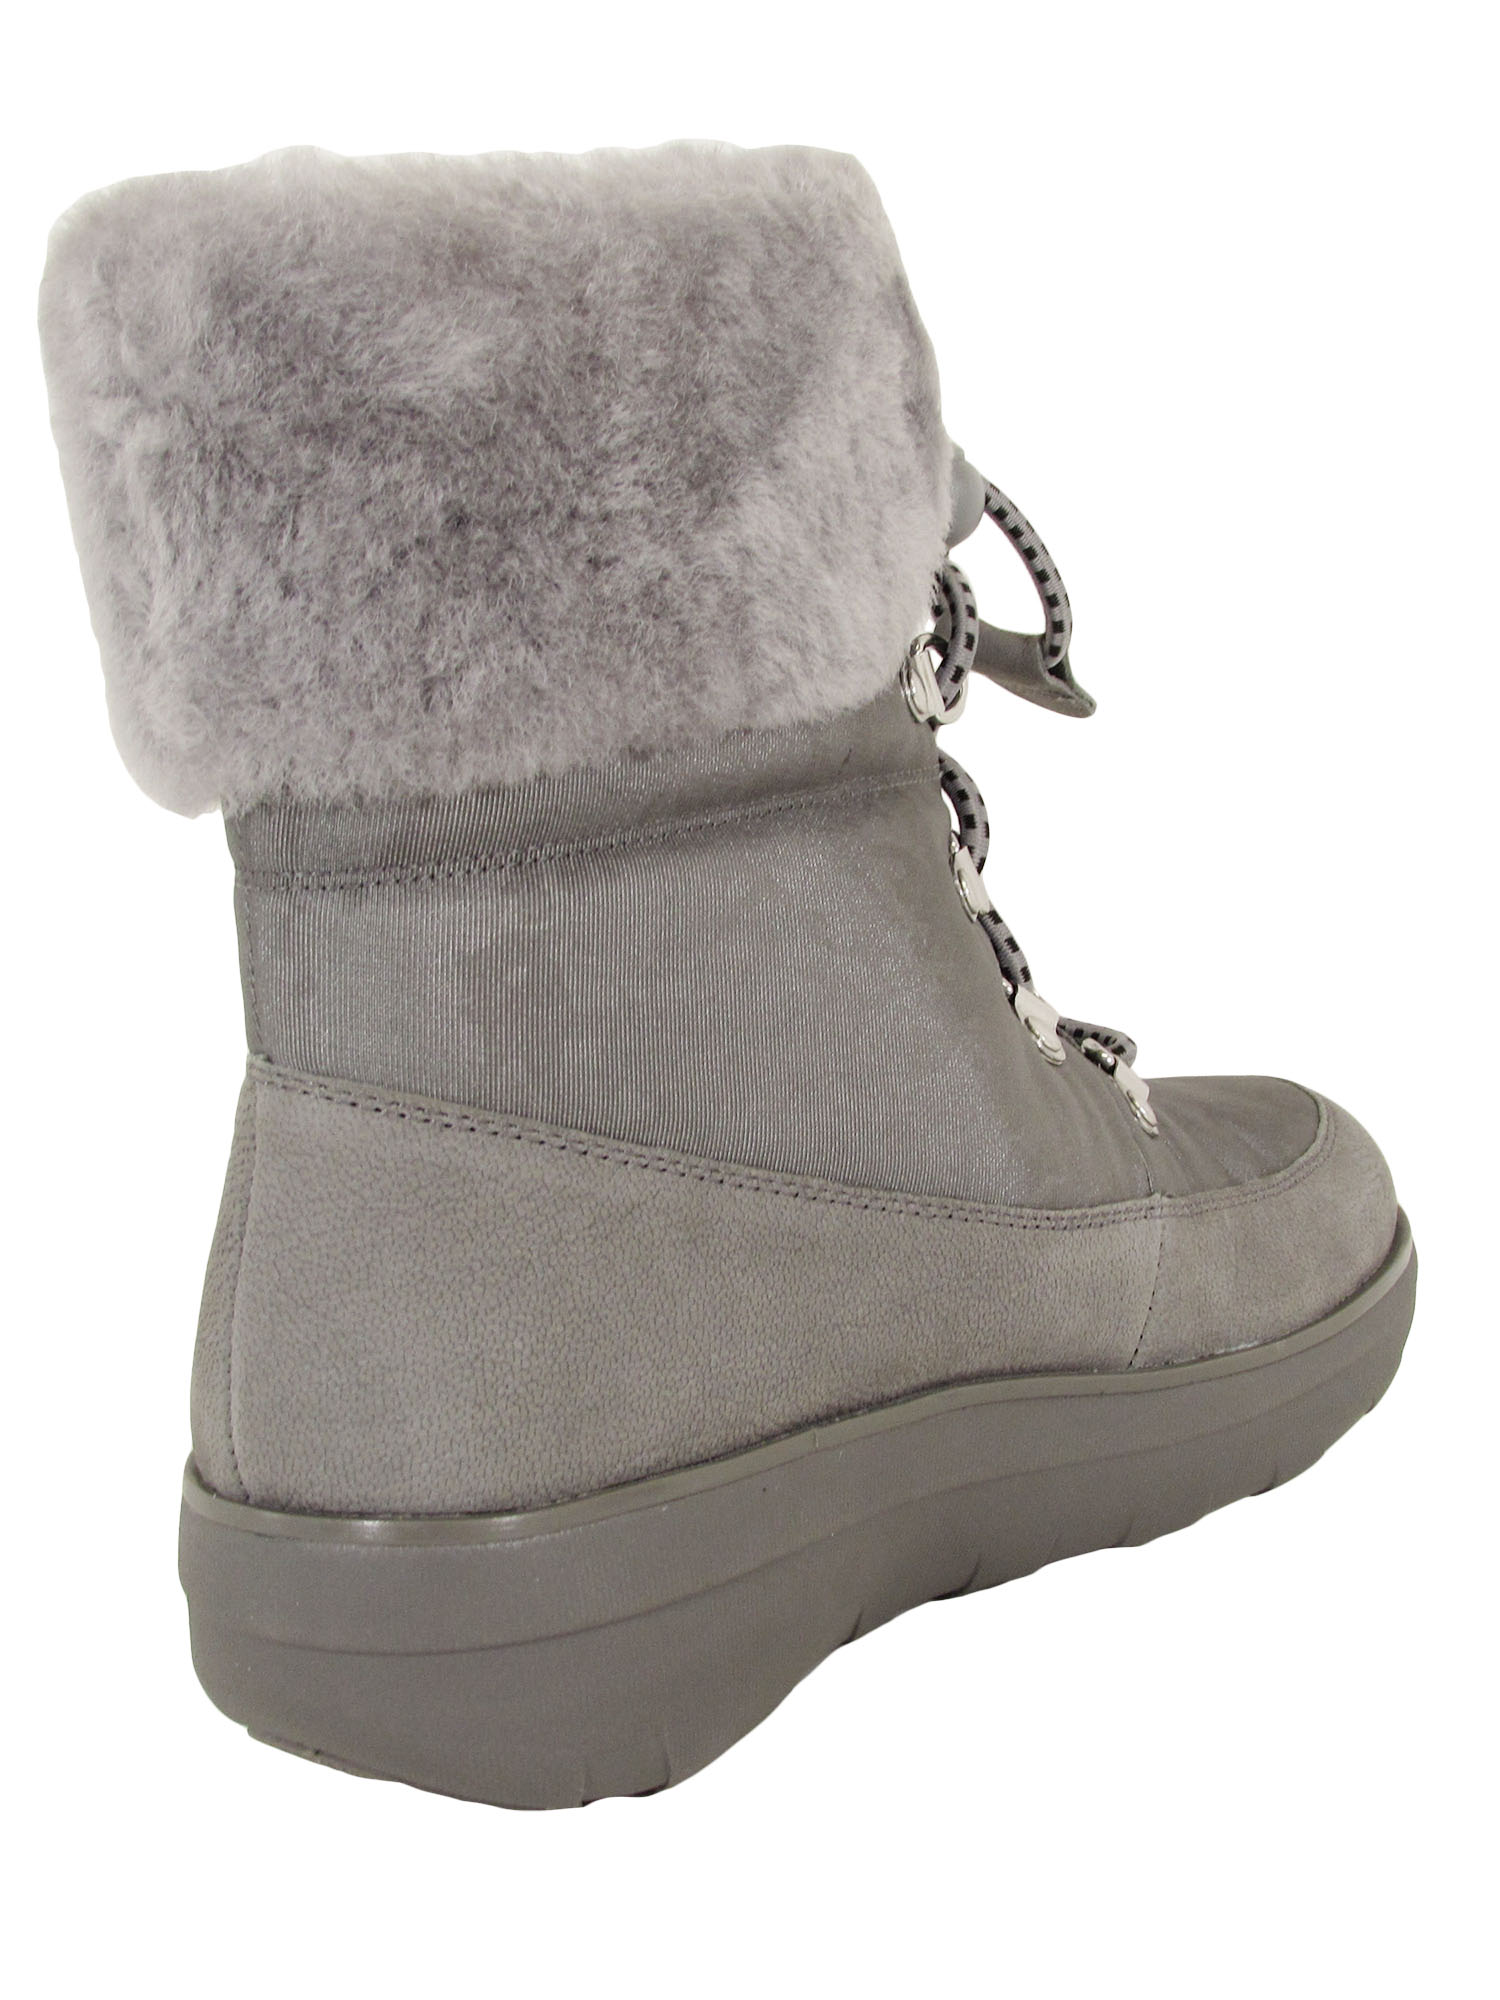 Fitflop-Womens-Holly-Shearling-Lace-Up-Winter-Boot-Shoes thumbnail 7